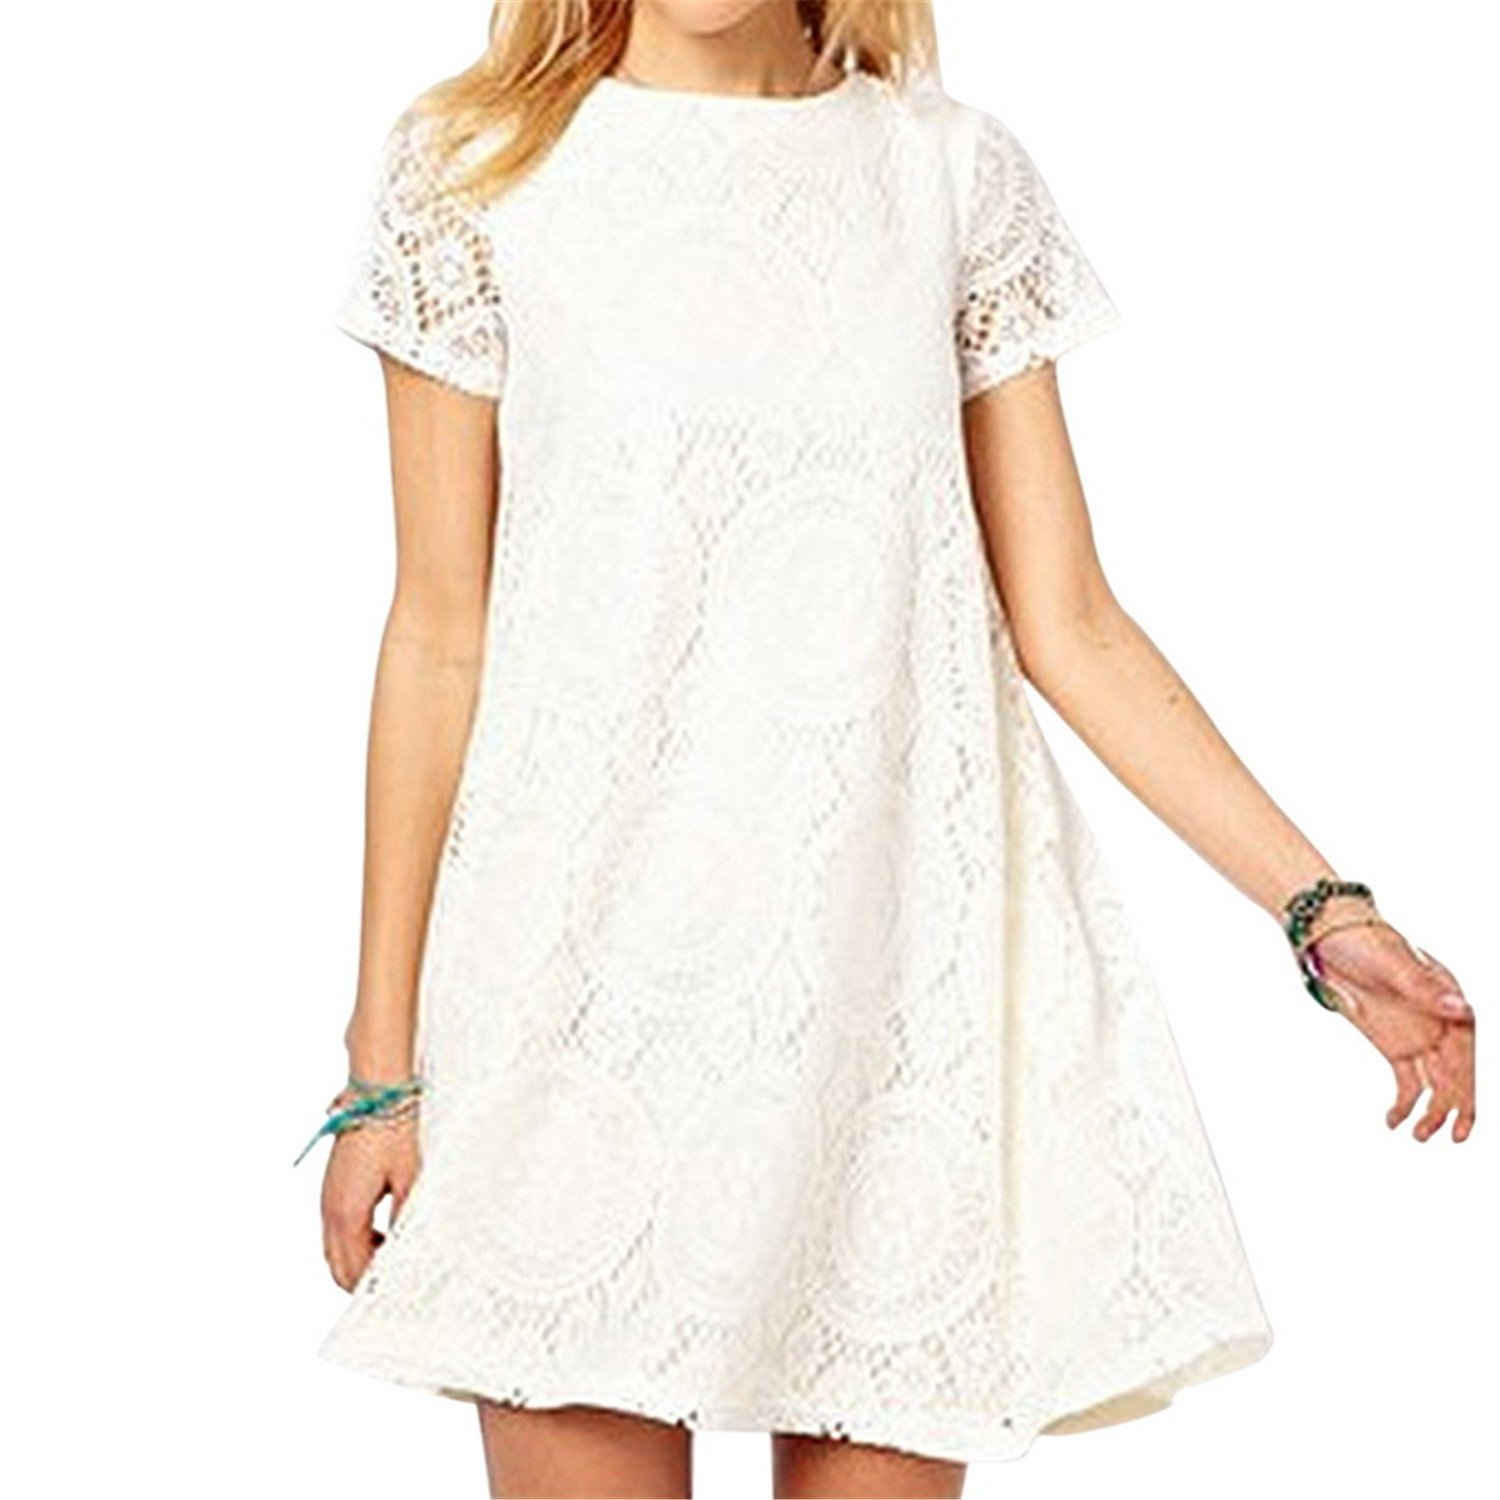 Chiffoned New Summer Lace Printing Casual Dress Loose O Neck Short Sleeve Hollow Out Beach Plus Size 5XL at Amazon Womens Clothing store: